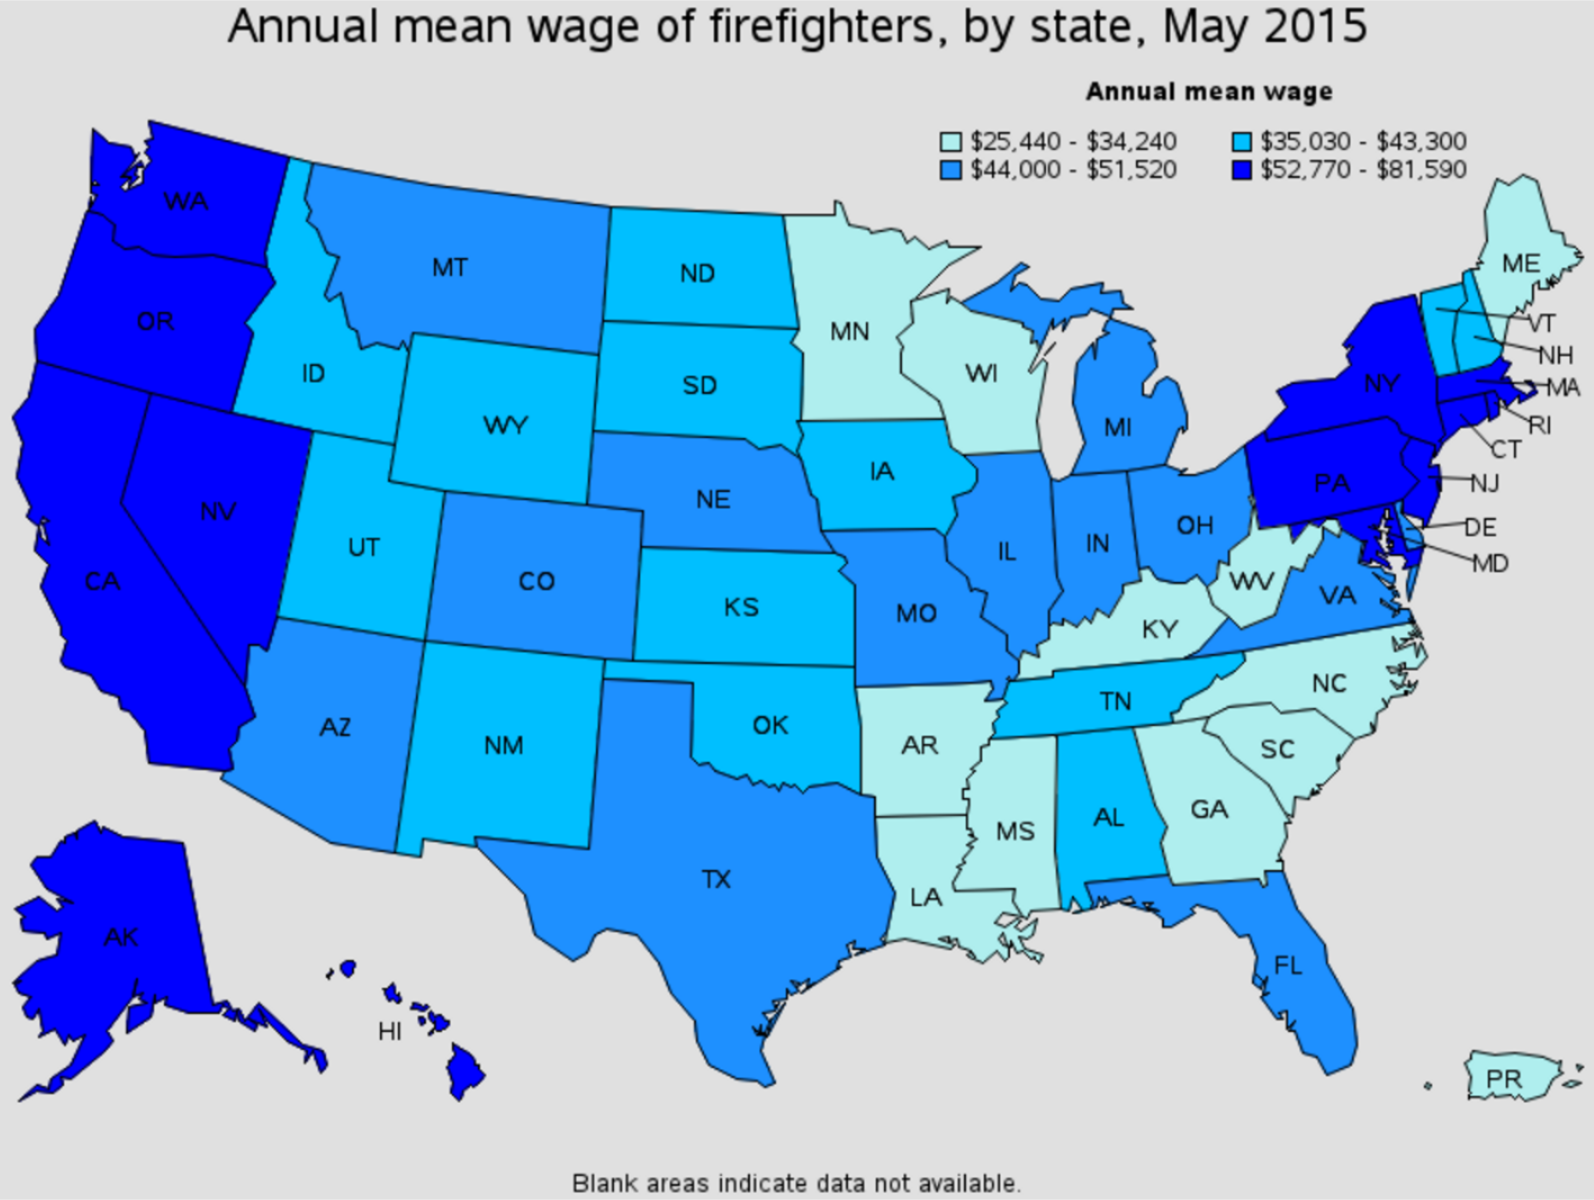 firefighter average salary by state Grand Rapids Michigan